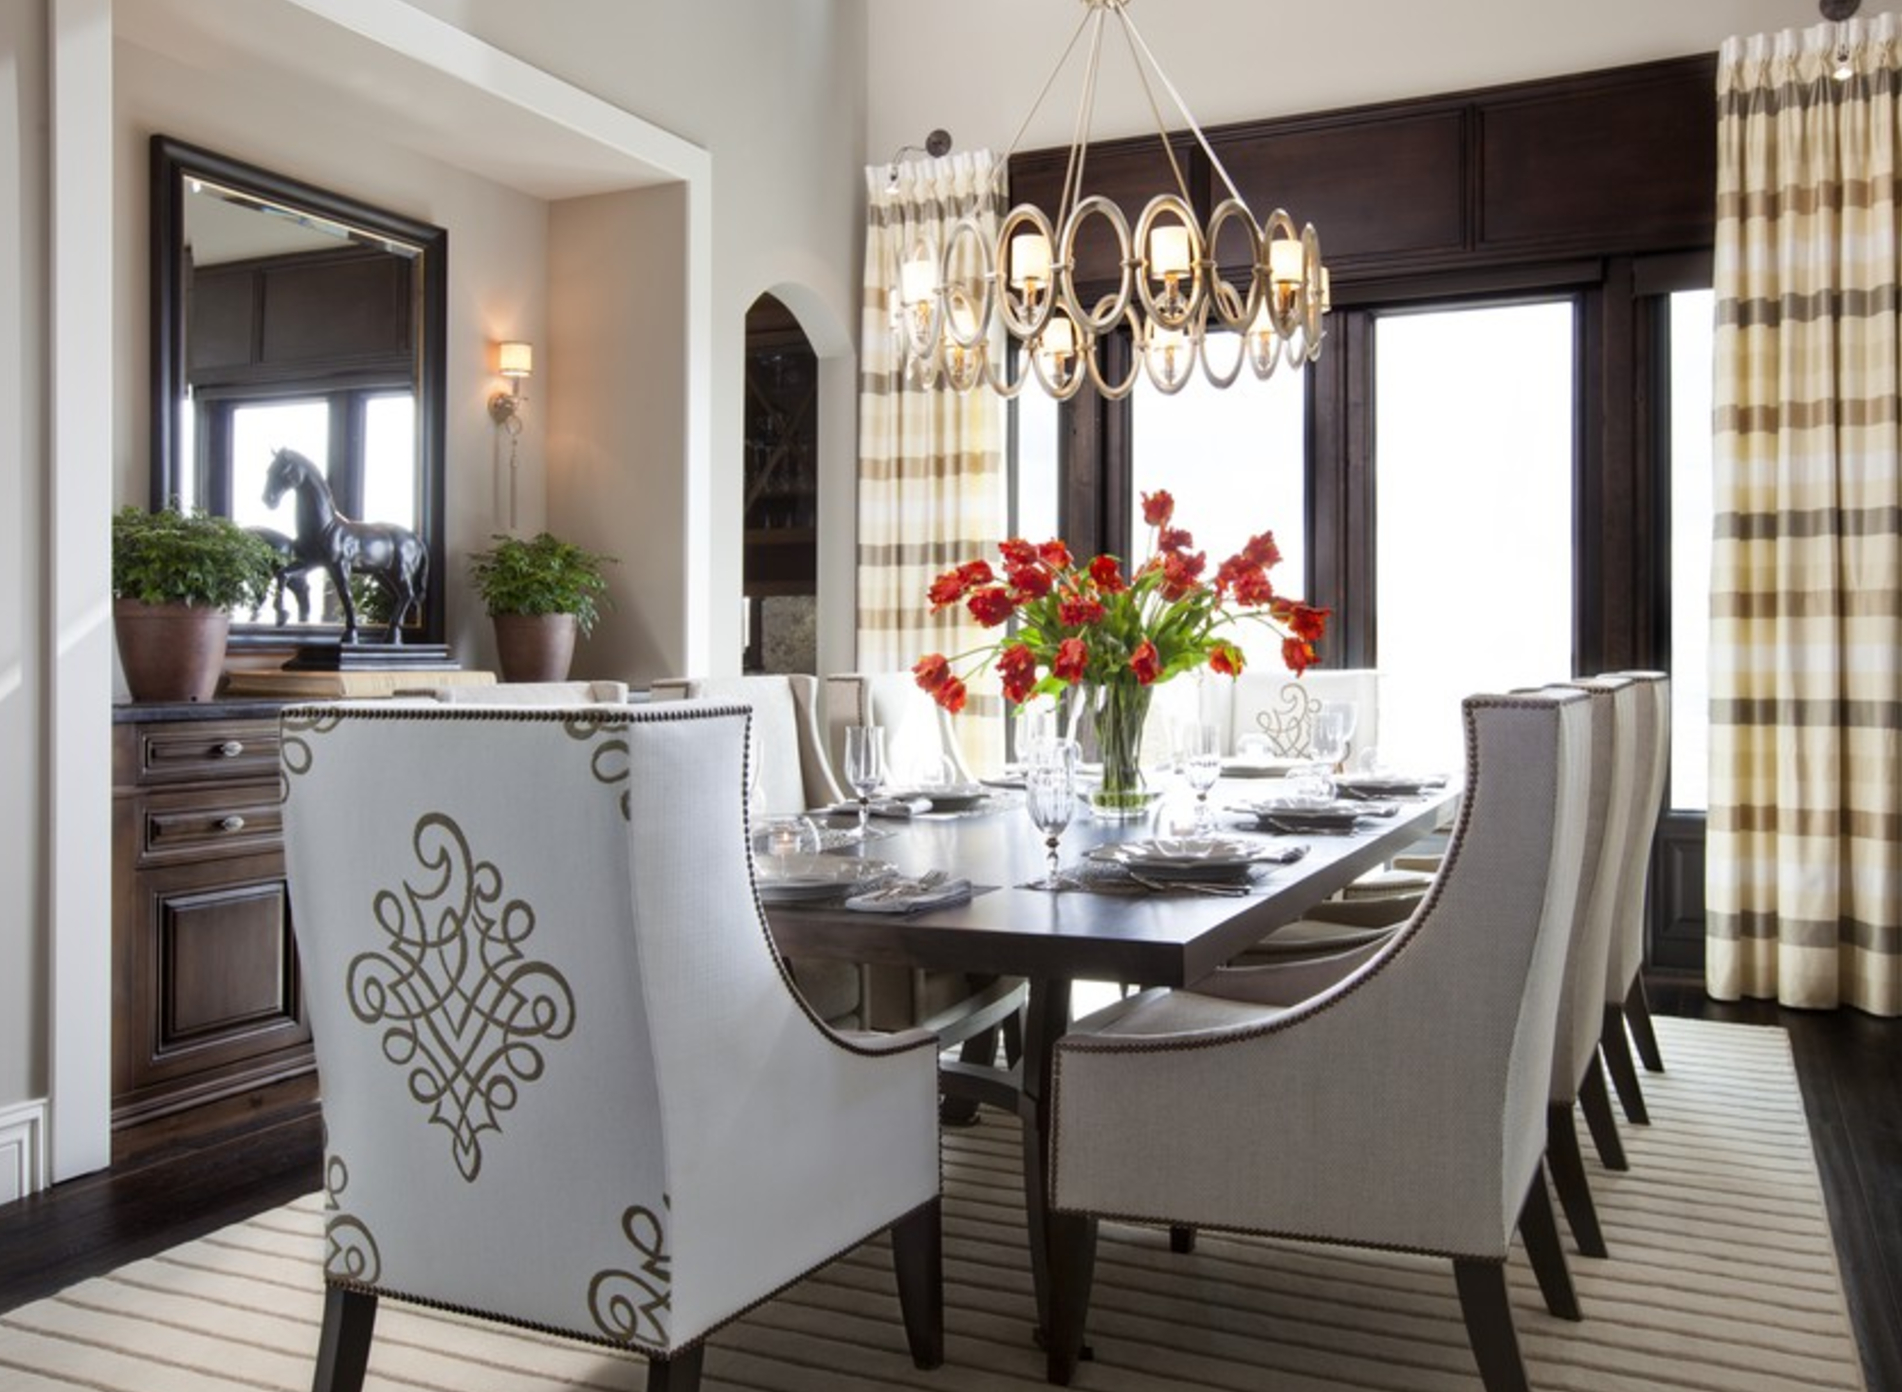 Dining Table Buying Guide: How To Find The Perfect Dining With Well Known Transitional 6 Seating Casual Dining Tables (View 7 of 25)